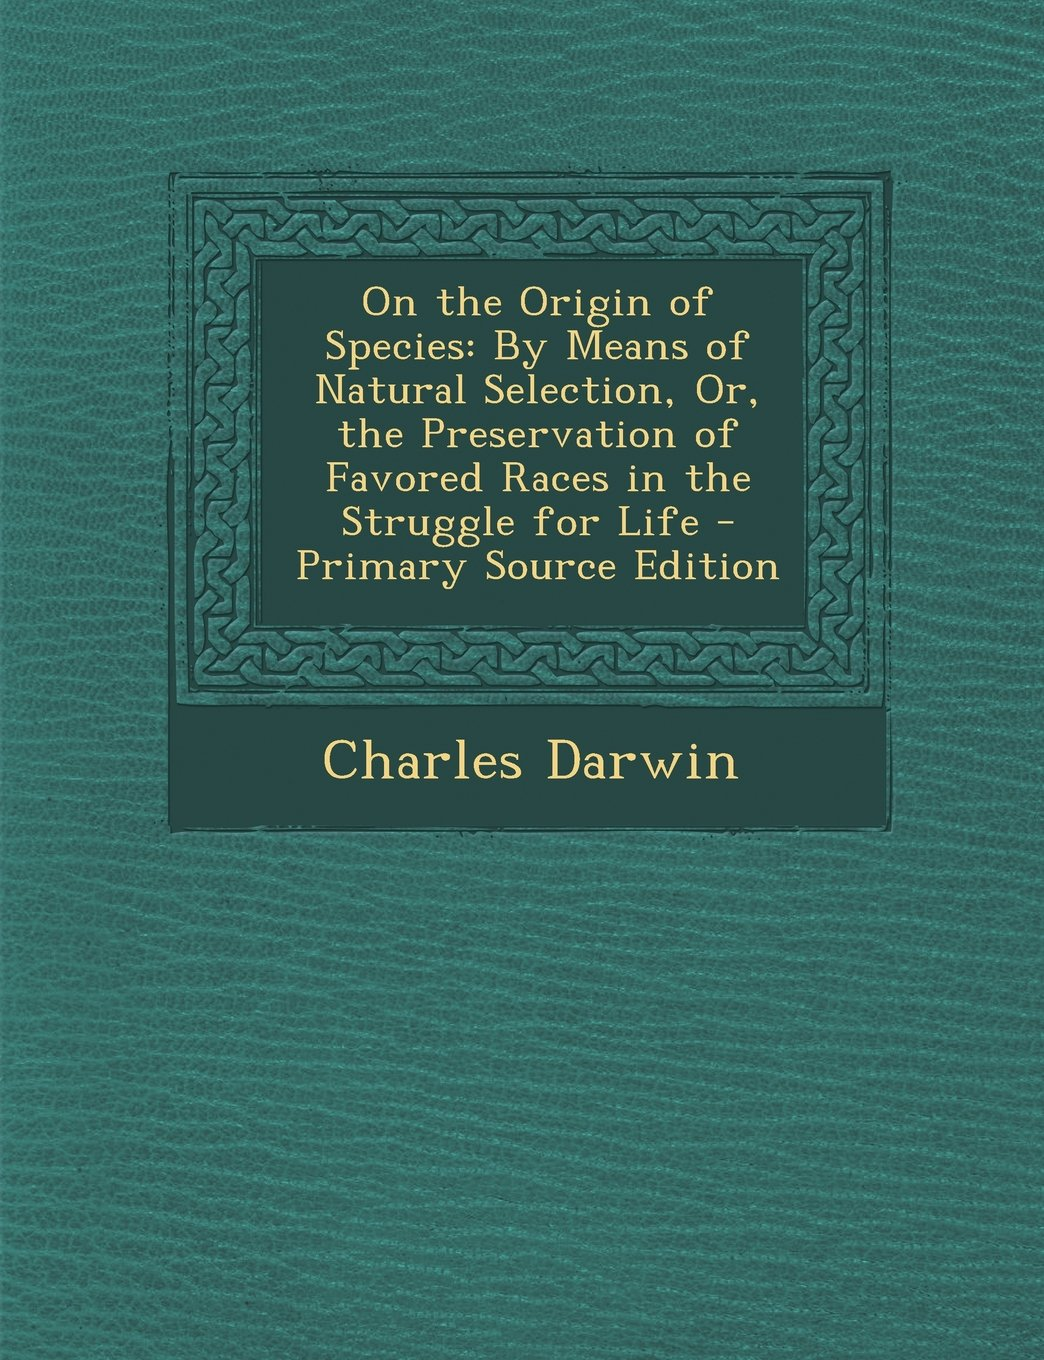 Download On the Origin of Species: By Means of Natural Selection, Or, the Preservation of Favored Races in the Struggle for Life pdf epub